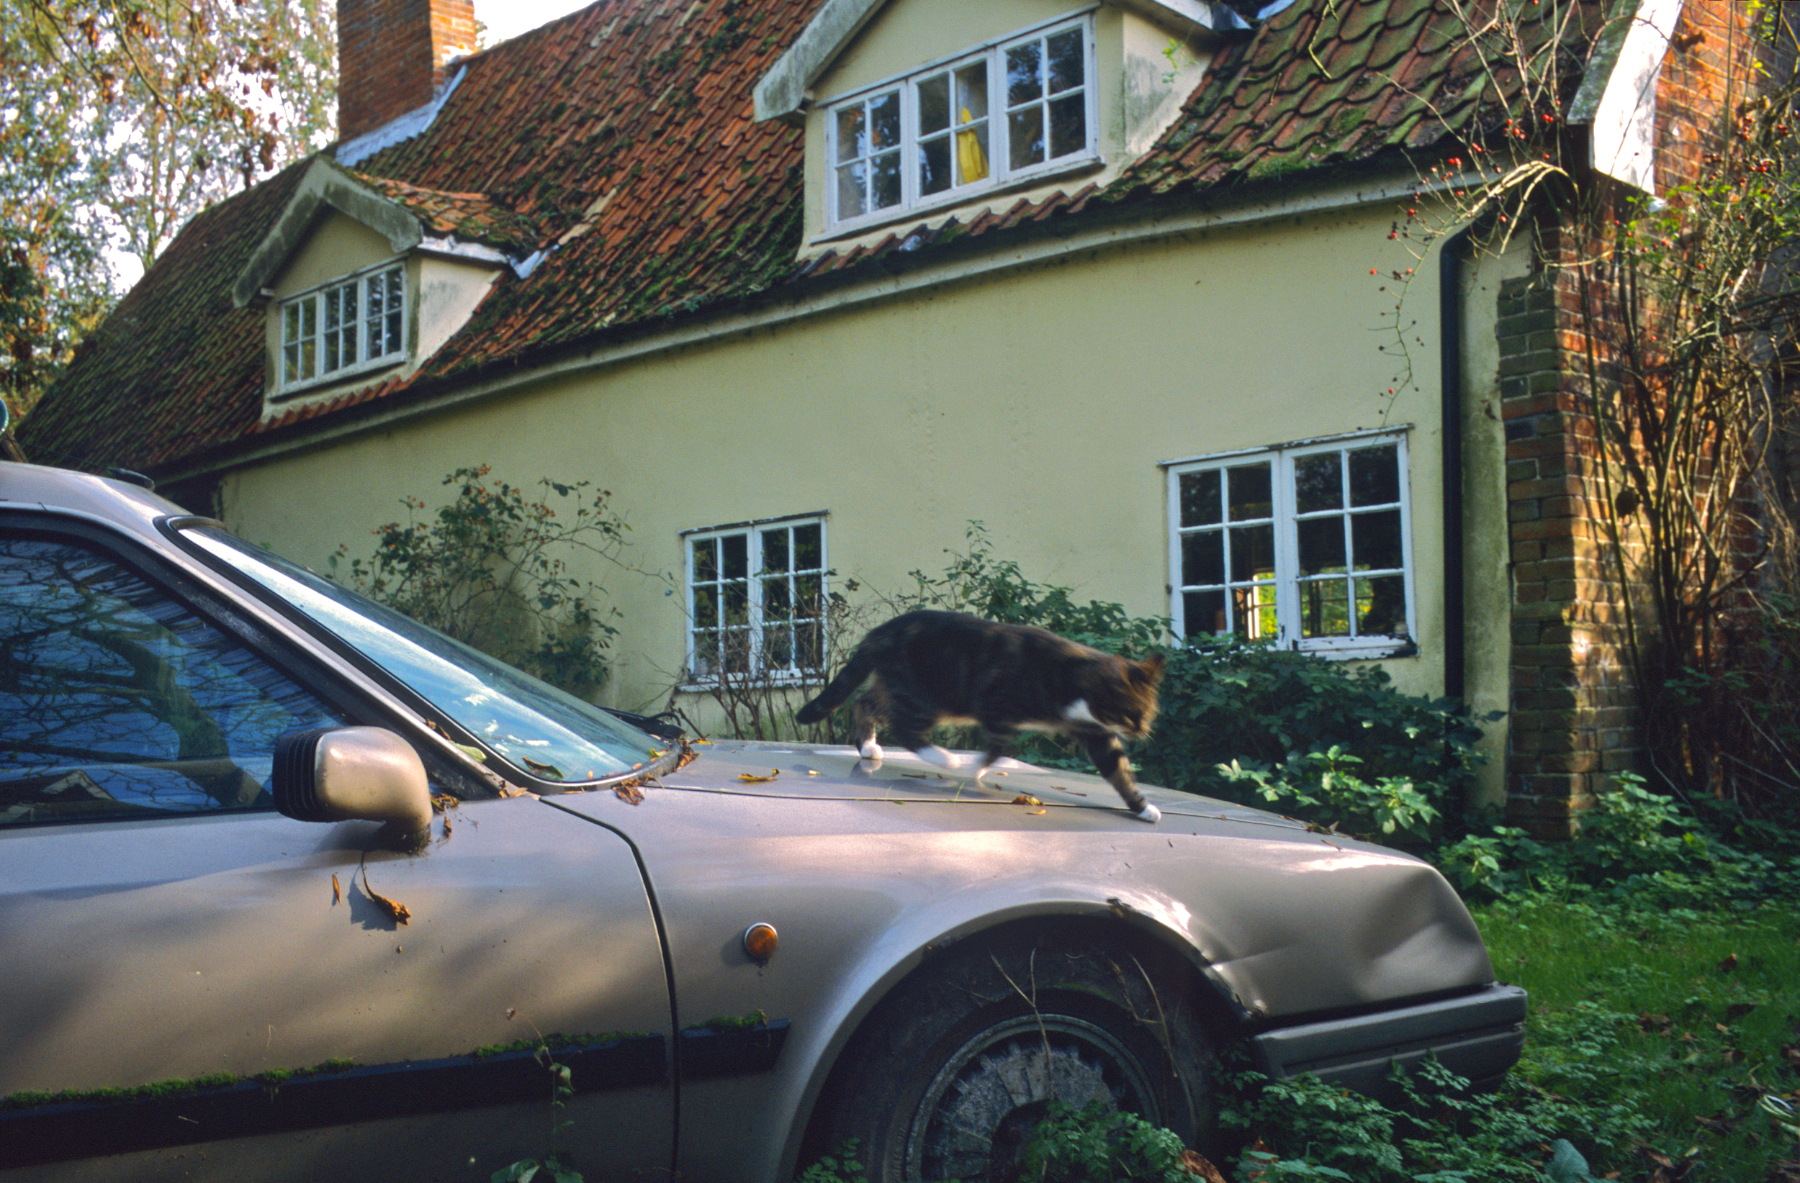 Citroën CX Safari and Cat, Walnut Tree Farm, Suffolk, 2006  28.5 x 42 inches, edition of 3;  22 x 32 inches, edition of 5